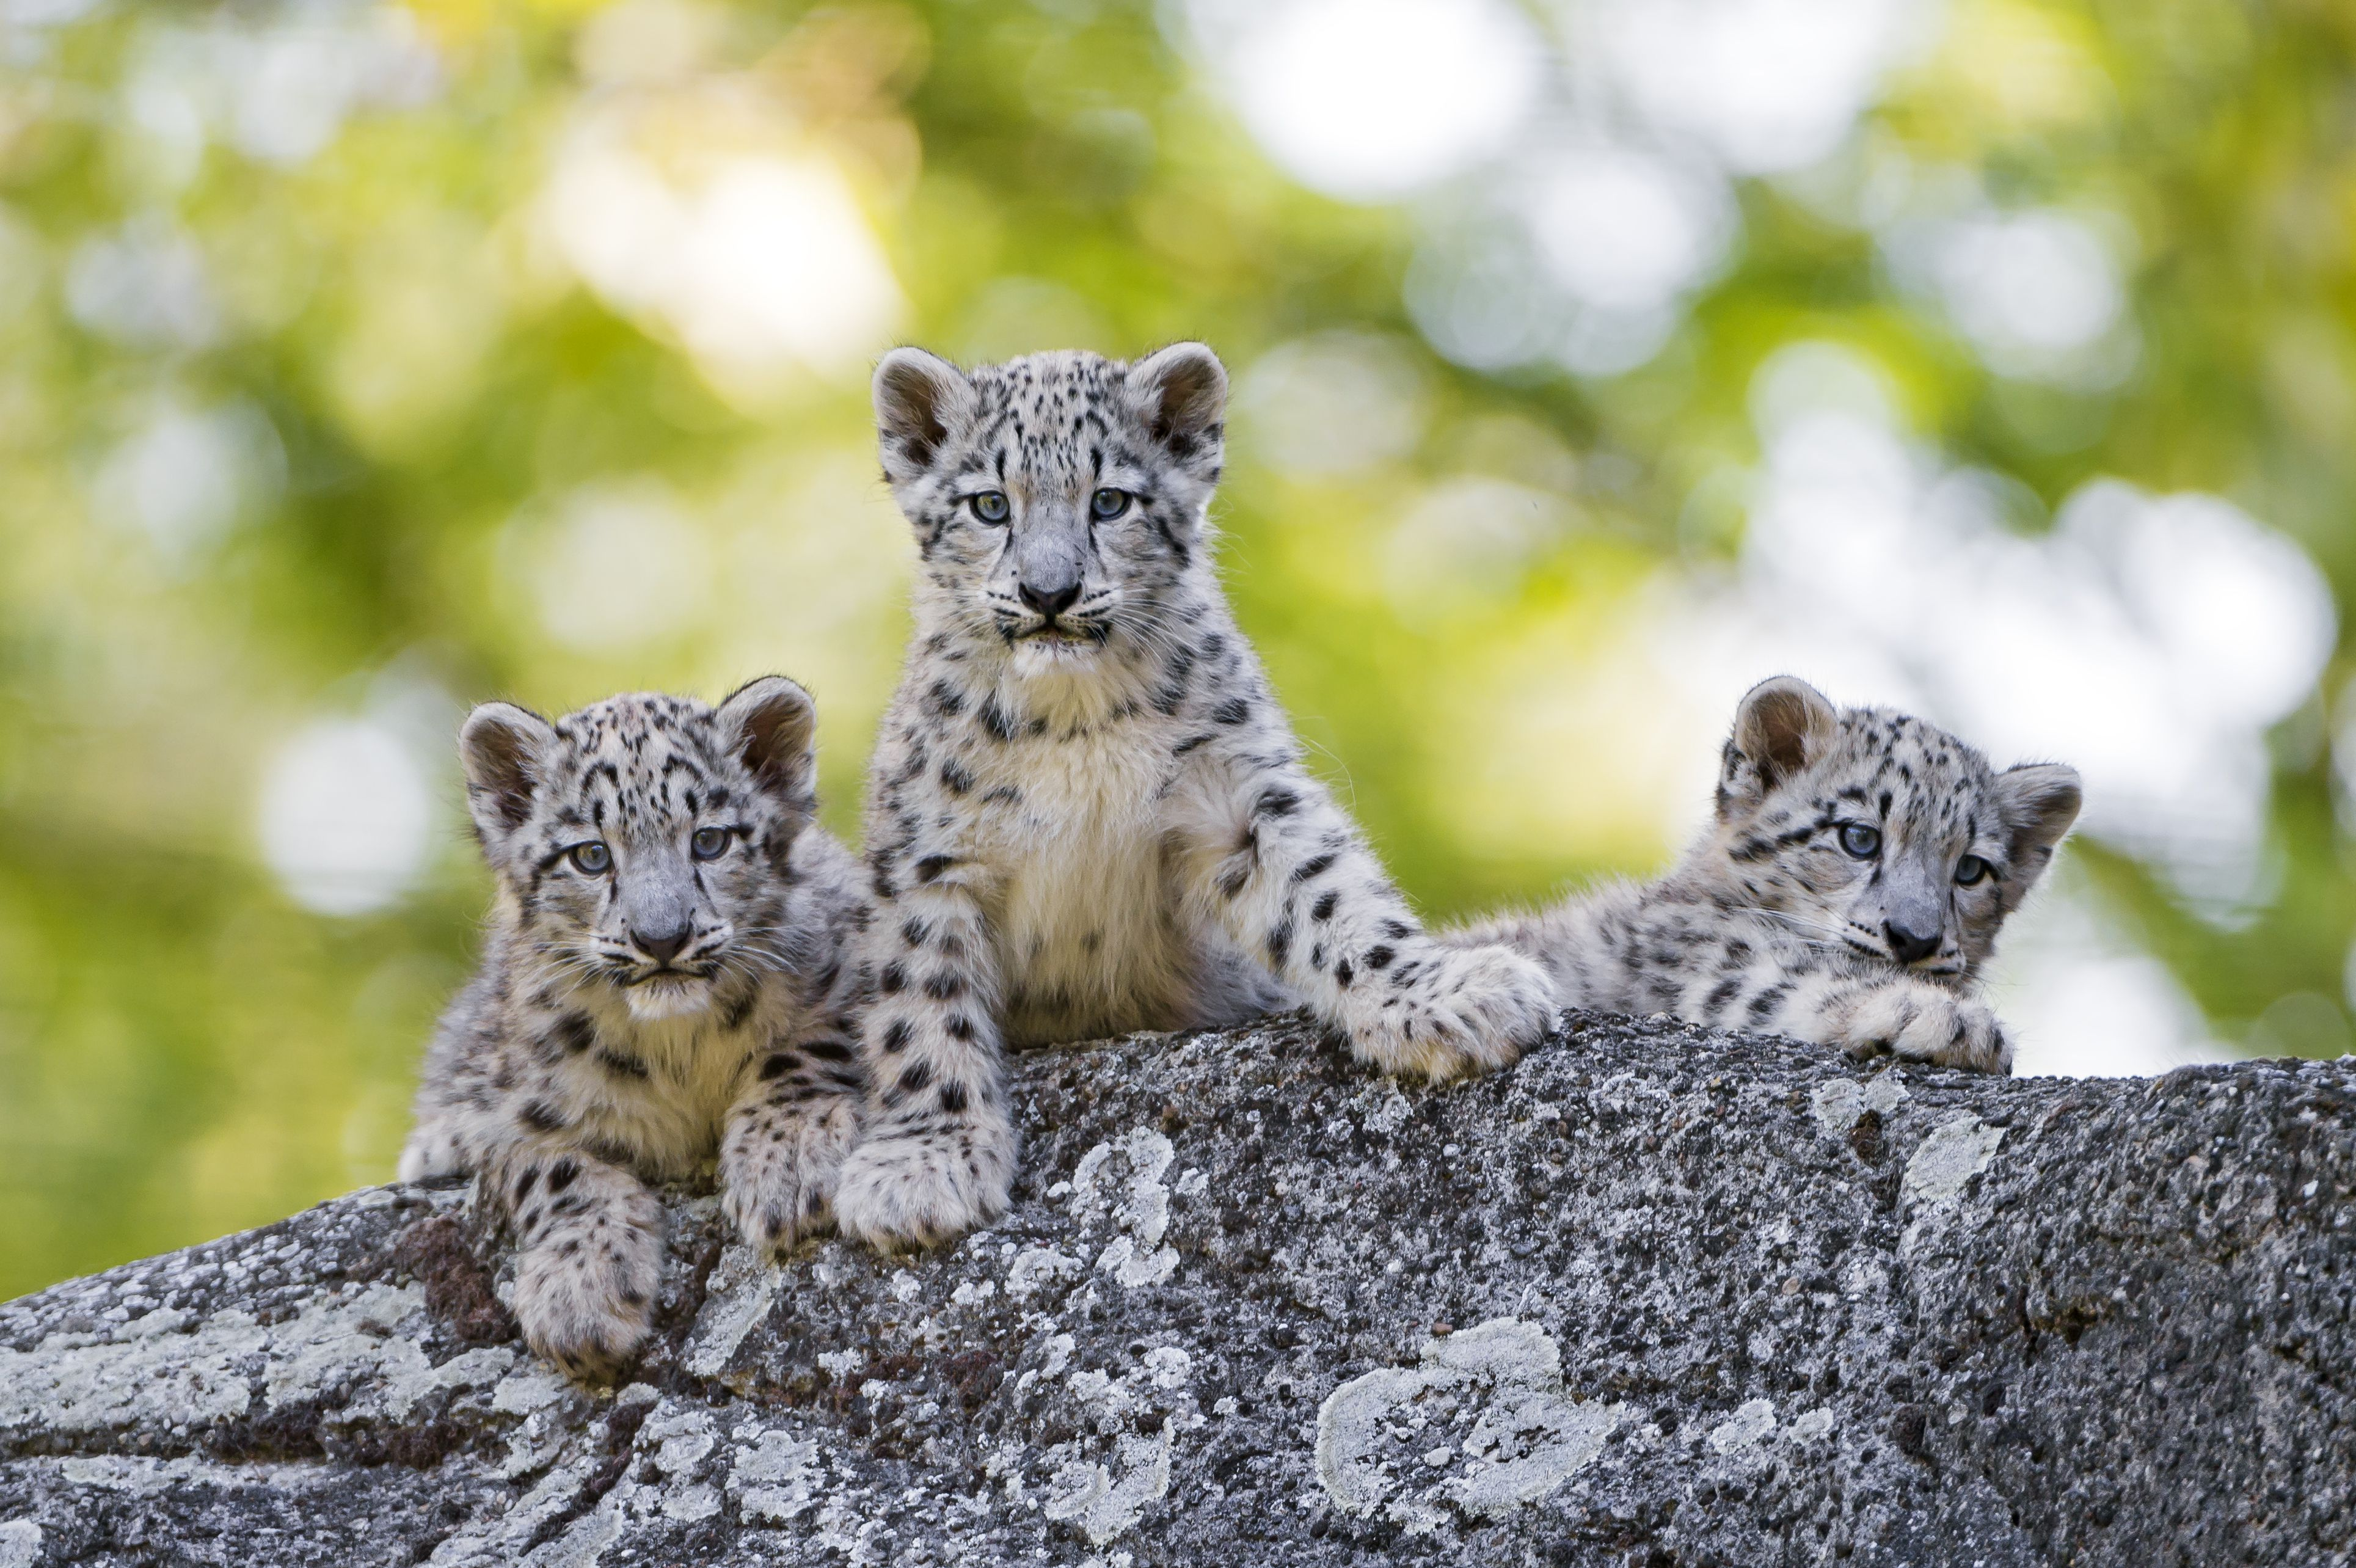 Snow leopard cubs have black spots that turn into rosettes as the cats approach maturity.